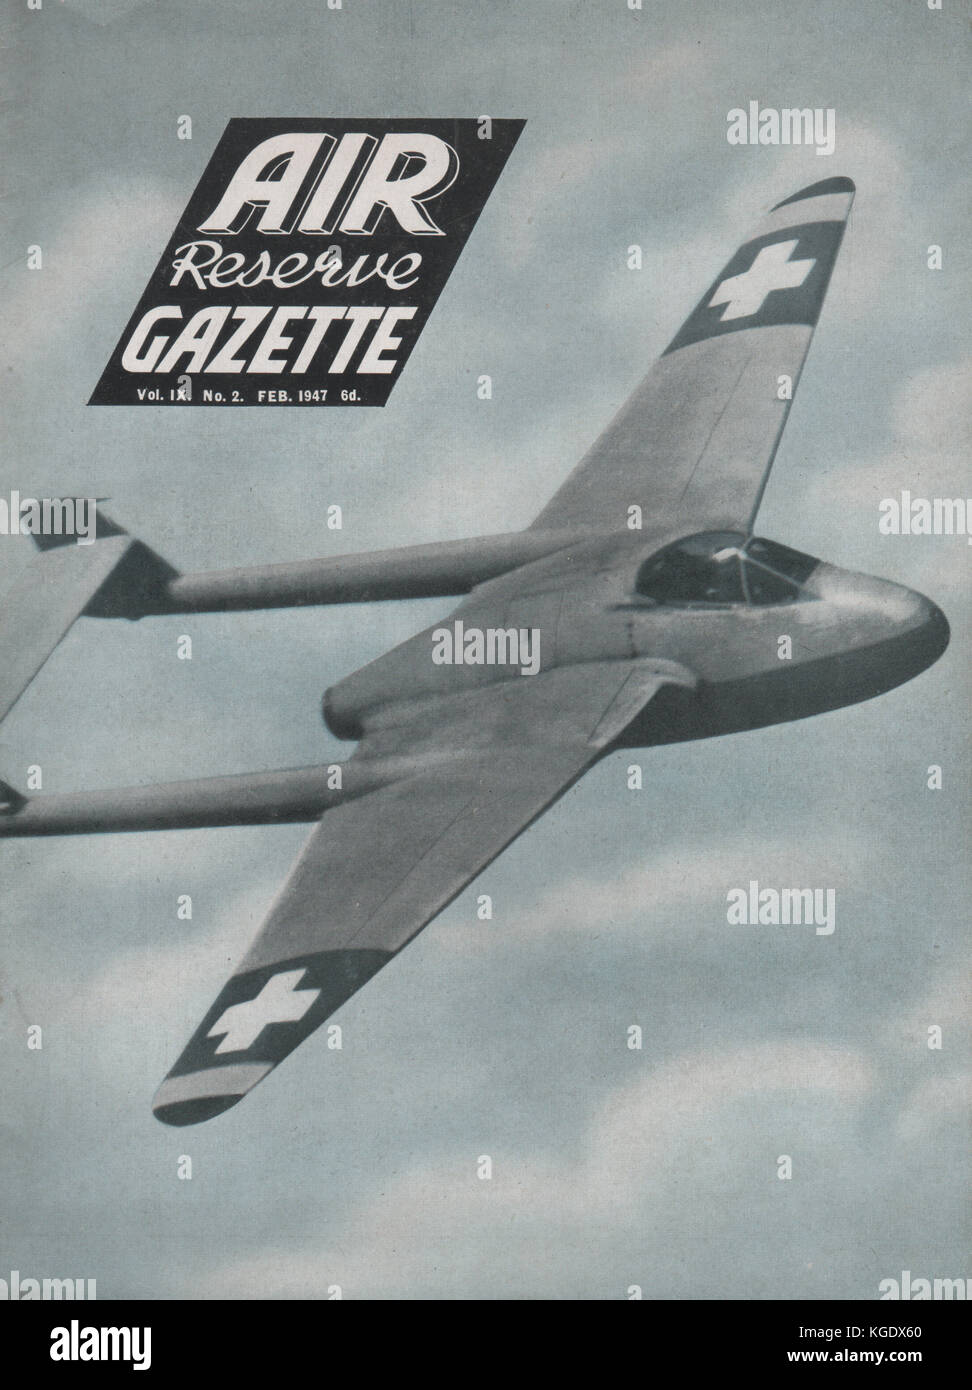 Vintage Air Reserve Gazette magazine cover dated February 1947 showing a DeHavilland Vampire fighter bomber of the - Stock Image